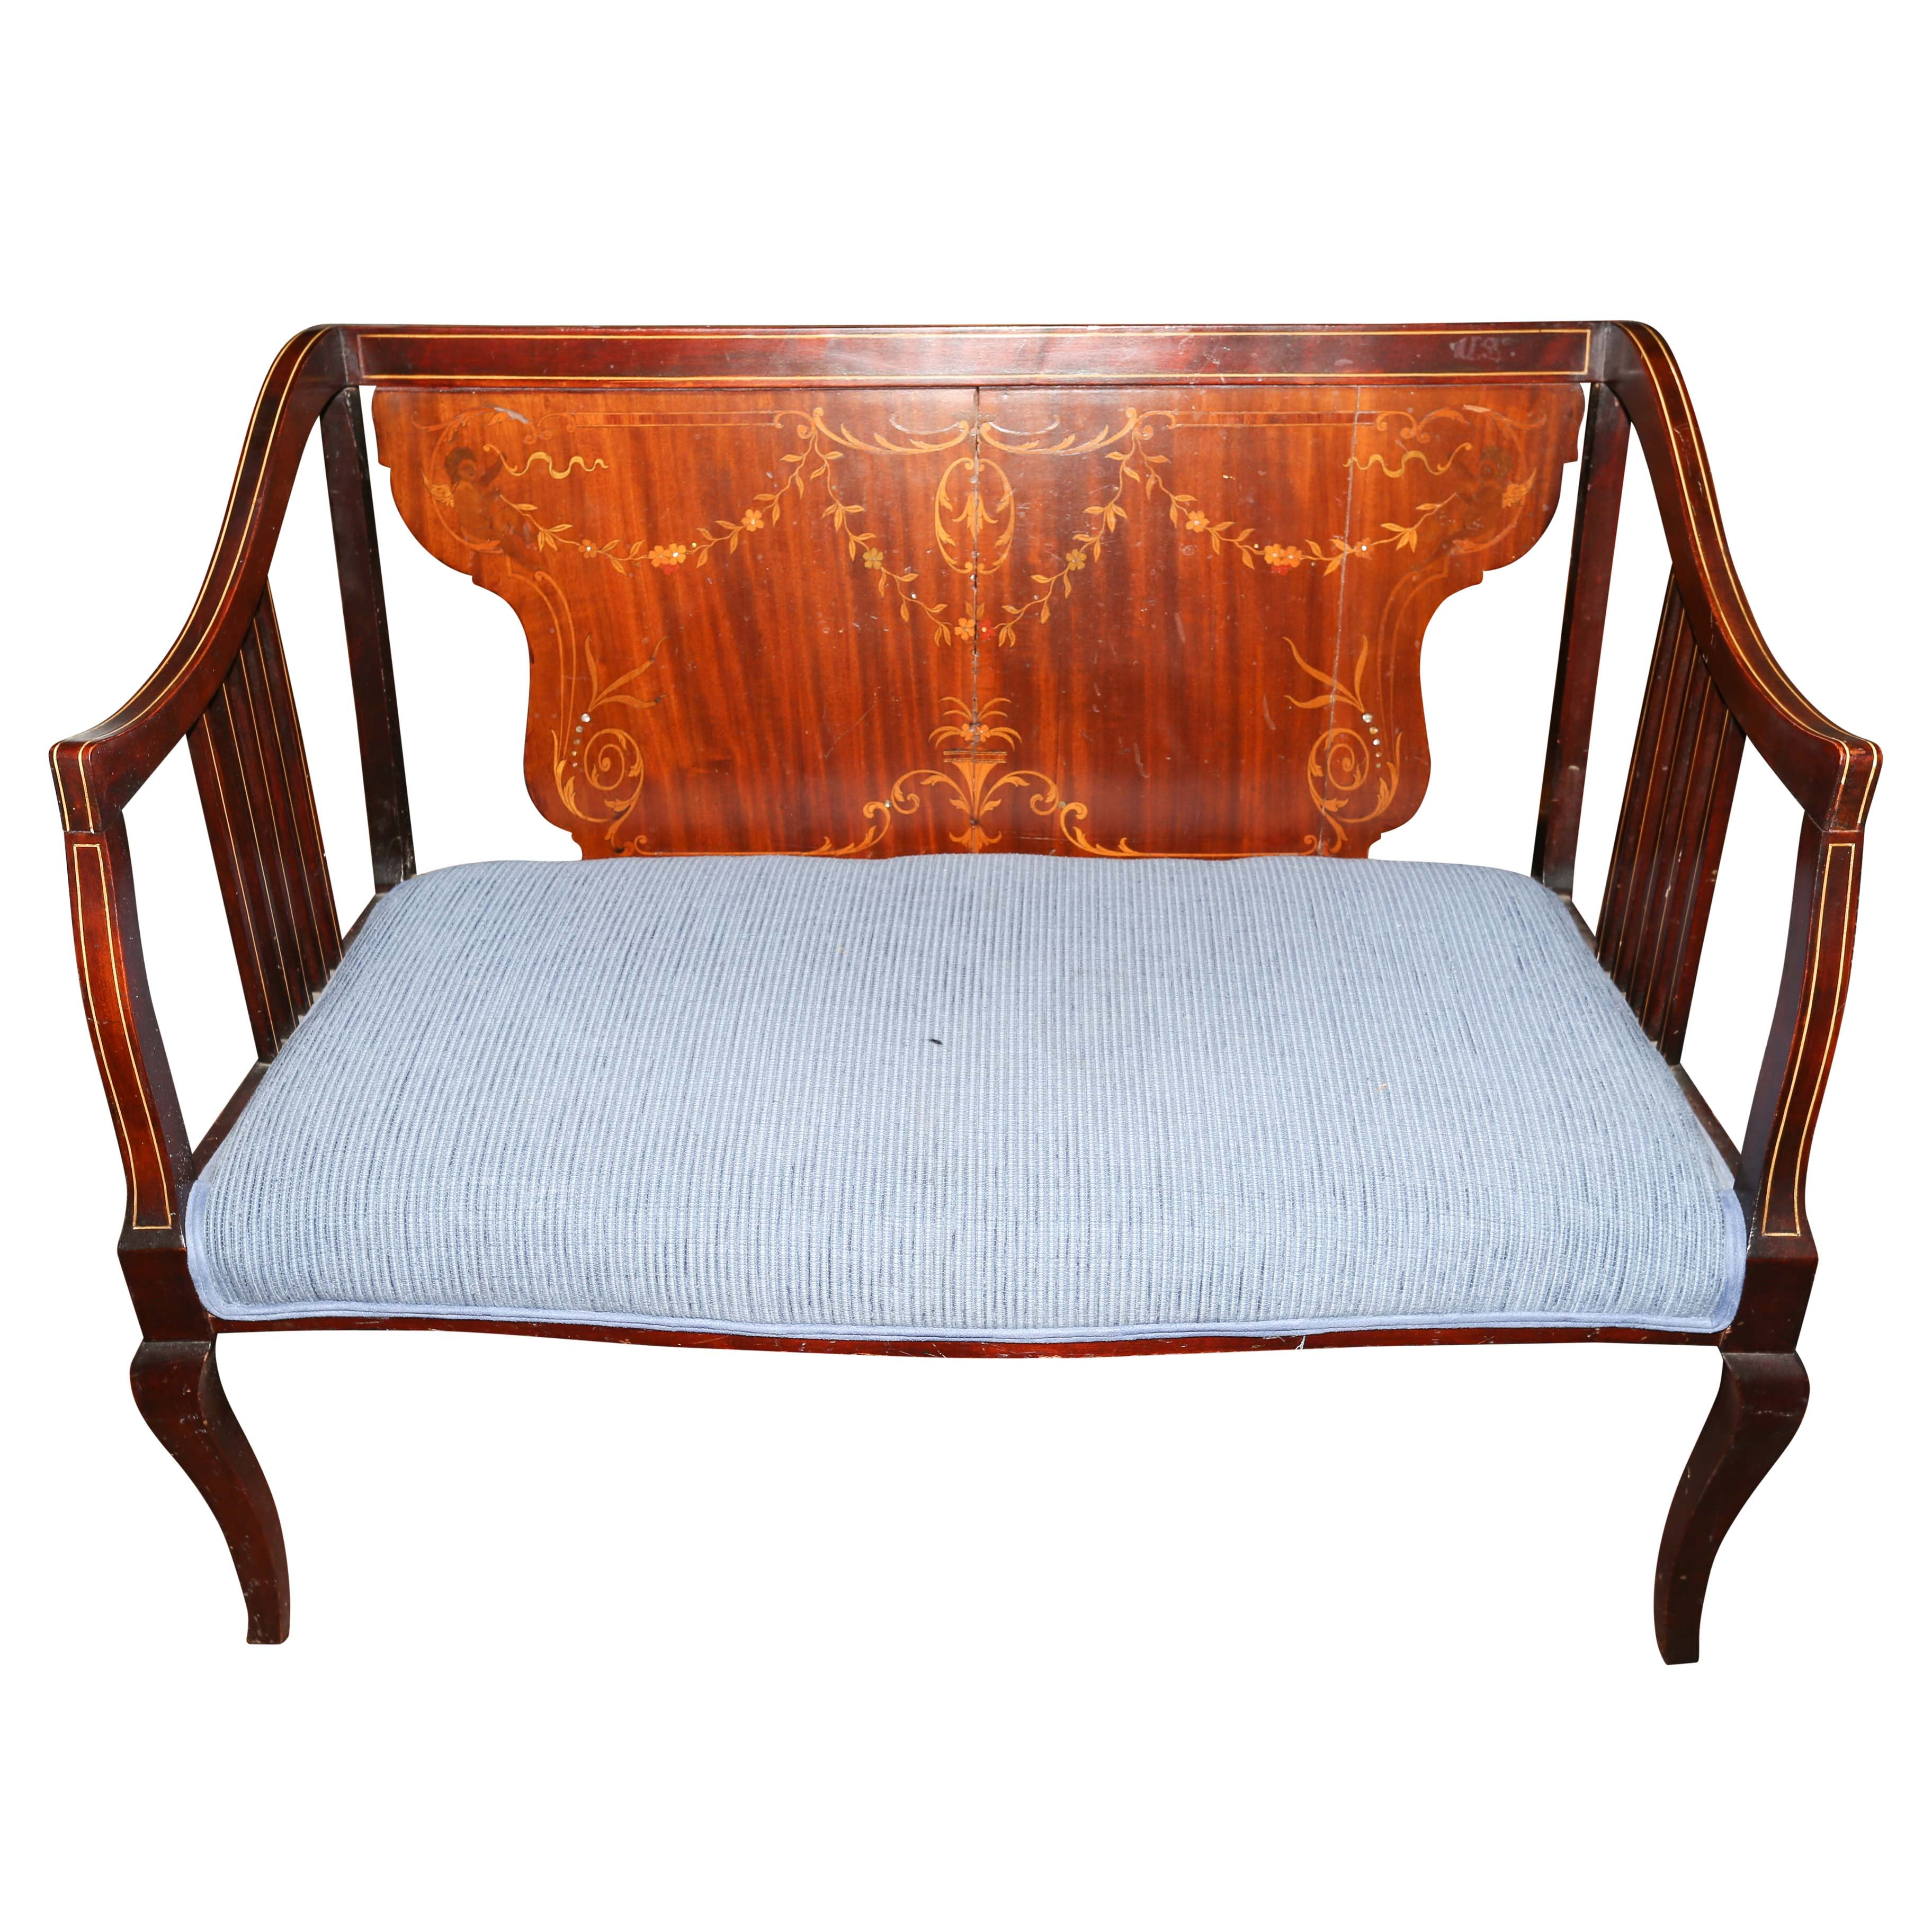 Antique Settee with Marquetry